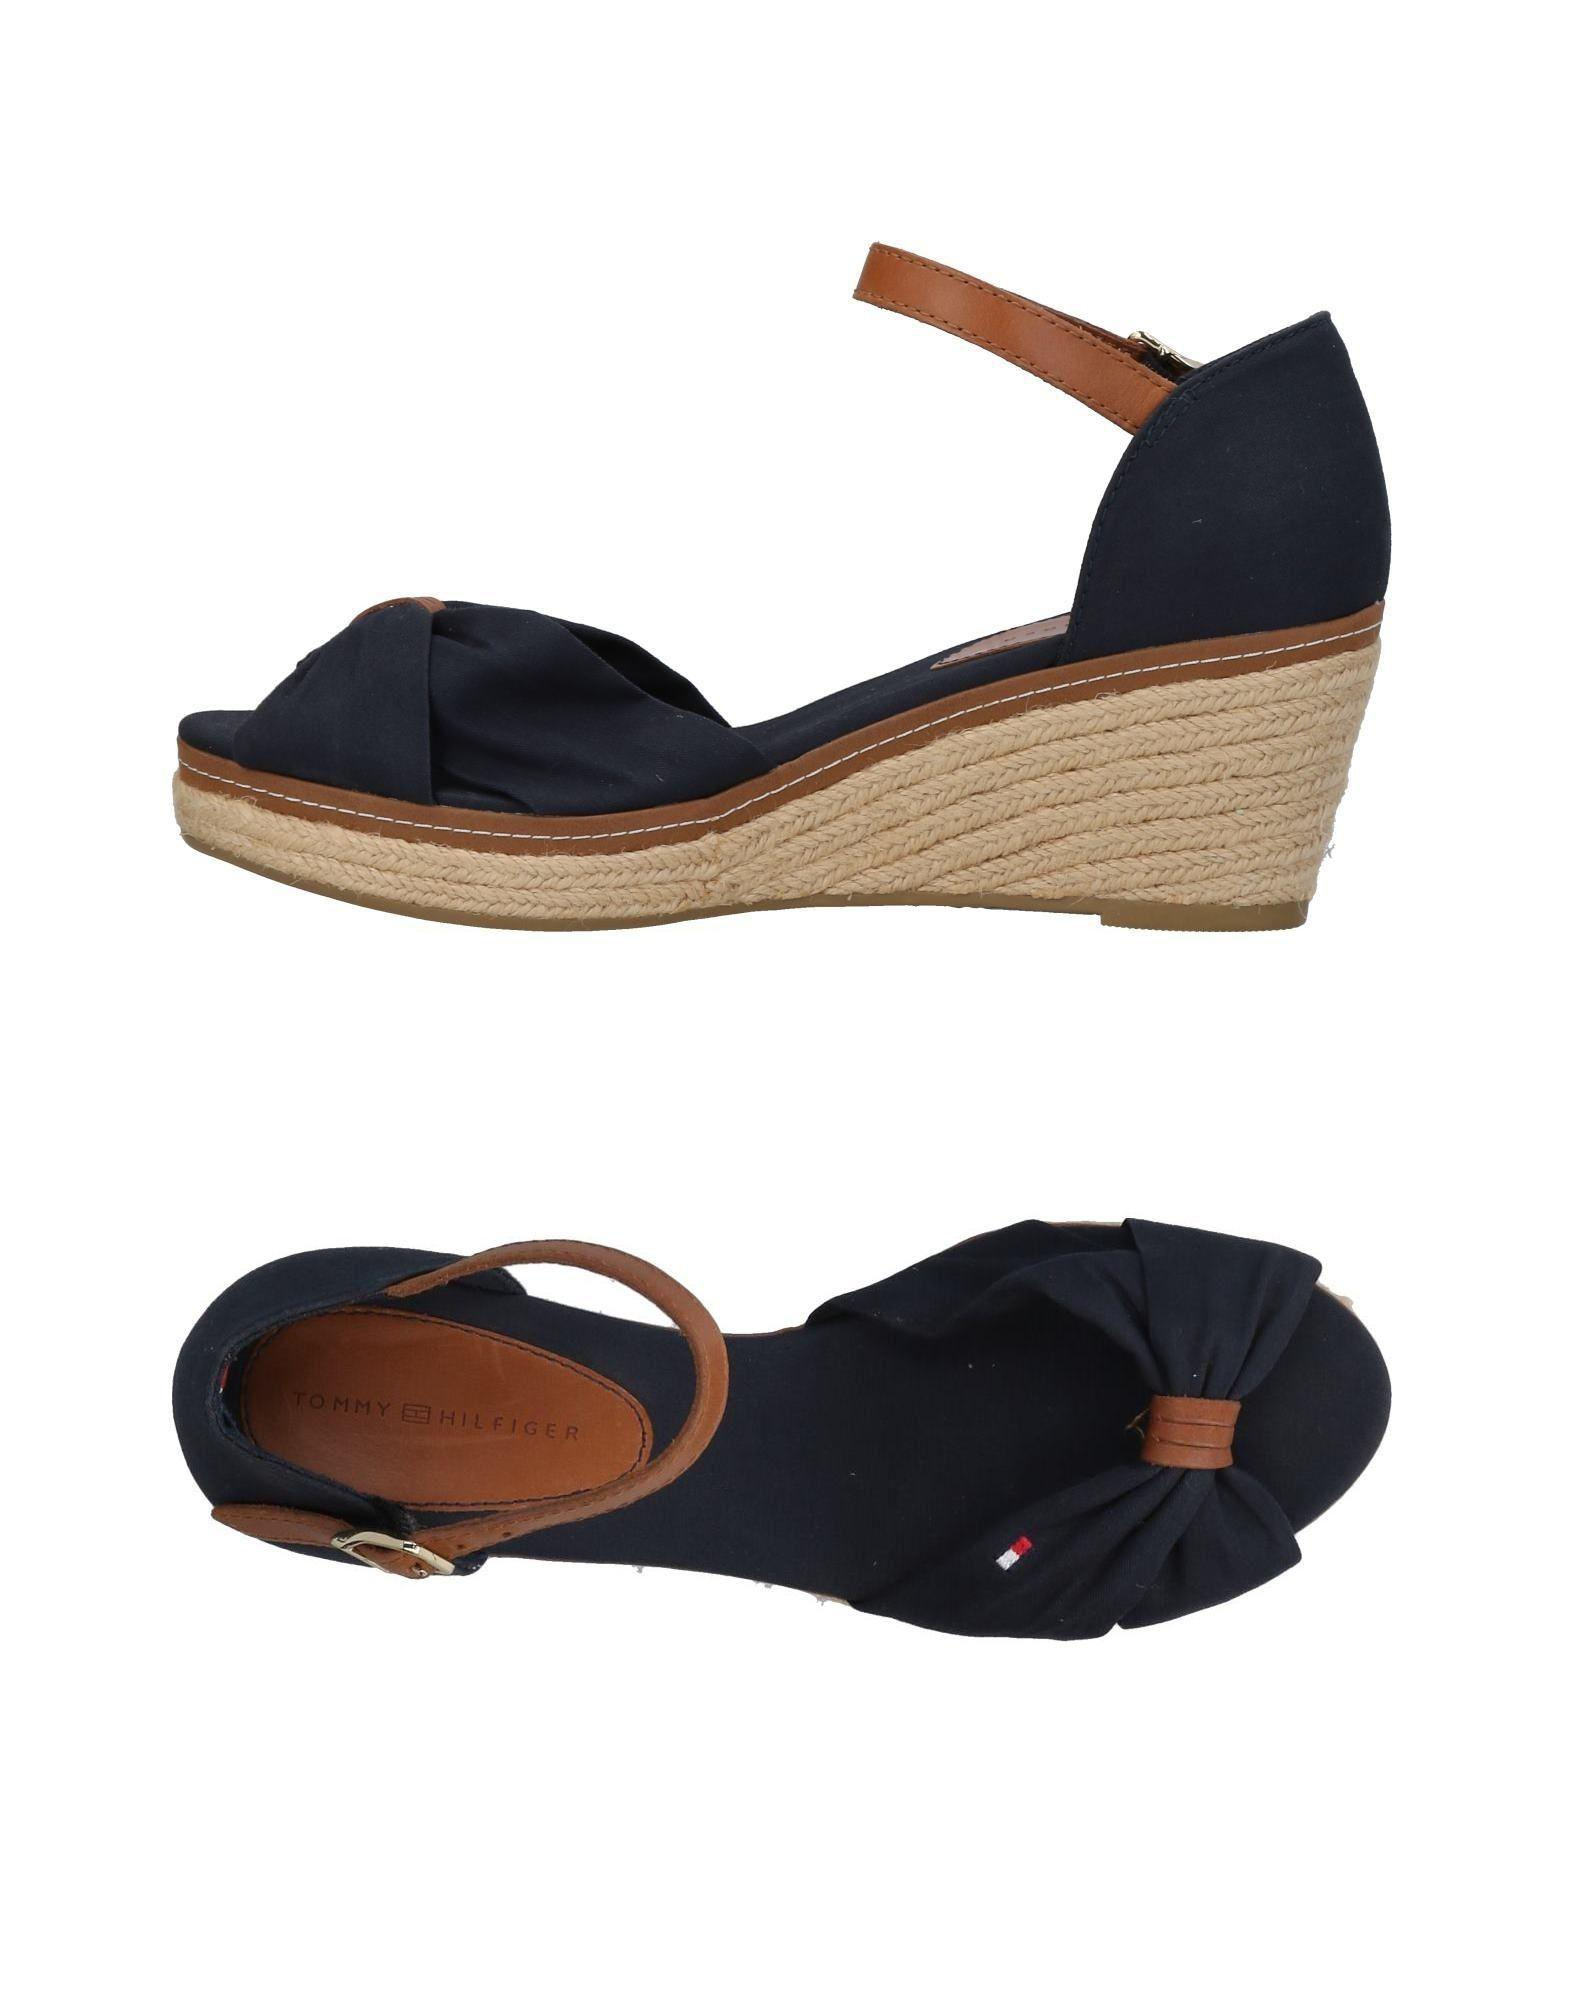 20d73633176 Lyst - Tommy Hilfiger Sandals in Blue